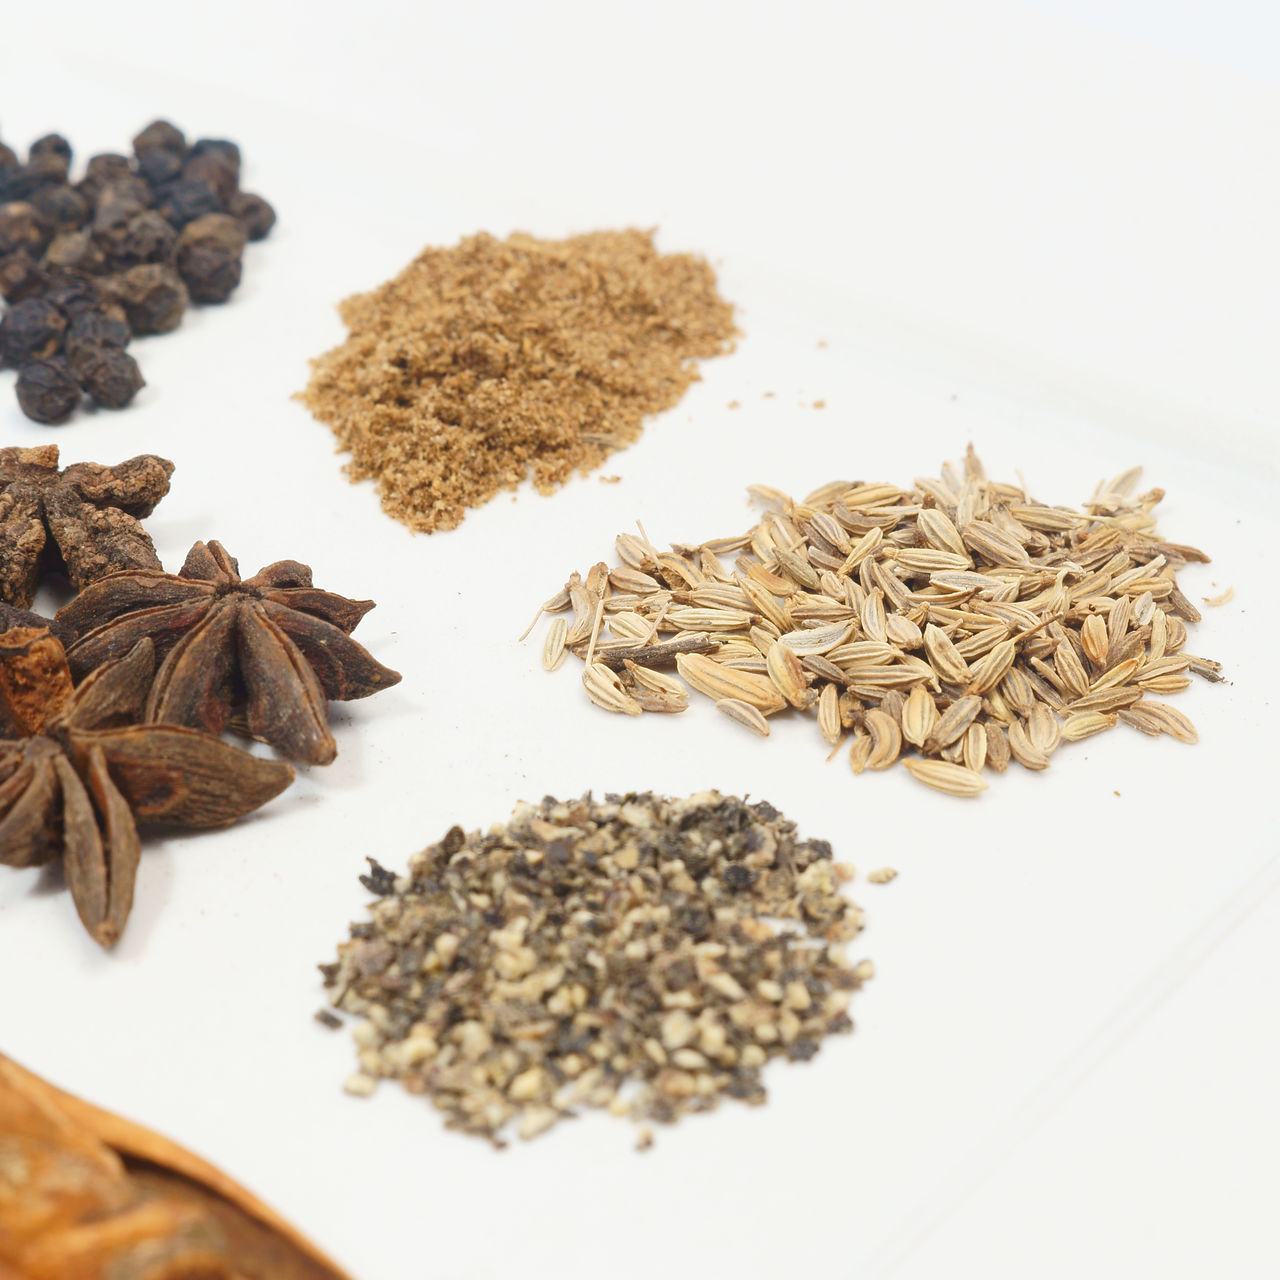 food and drink, spice, ingredient, food, cardamom, studio shot, white background, star anise, no people, black peppercorn, close-up, freshness, healthy eating, indoors